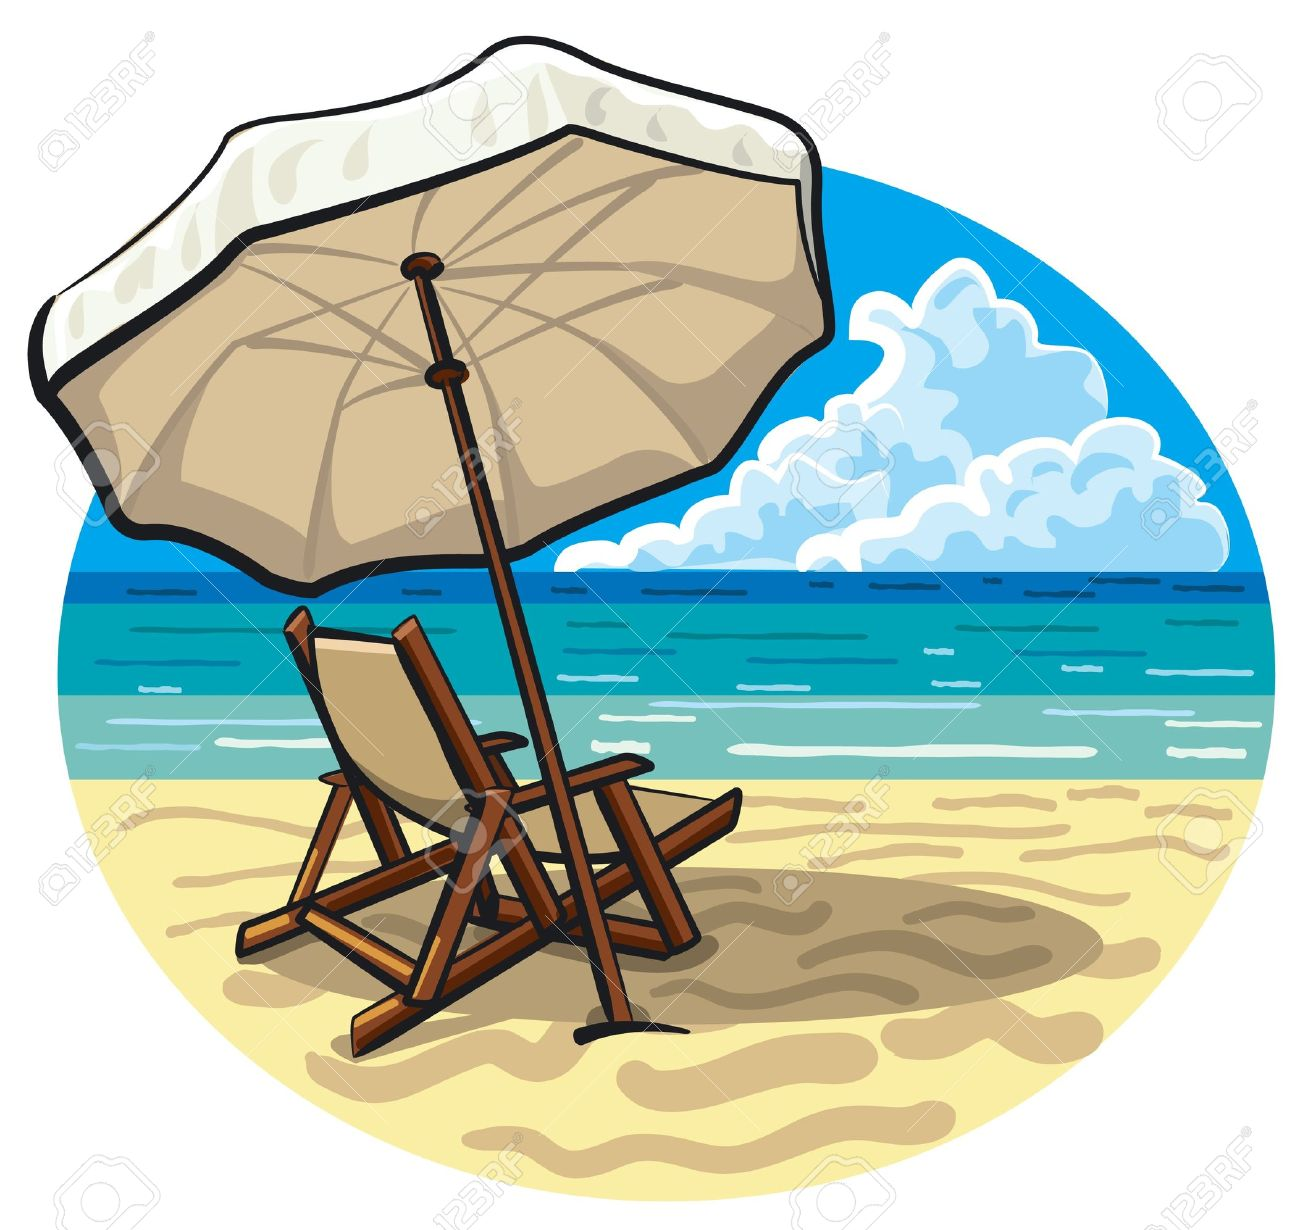 Beach chair and umbrella royalty free cliparts vectors and stock beach chair and umbrella stock vector 15516440 voltagebd Gallery